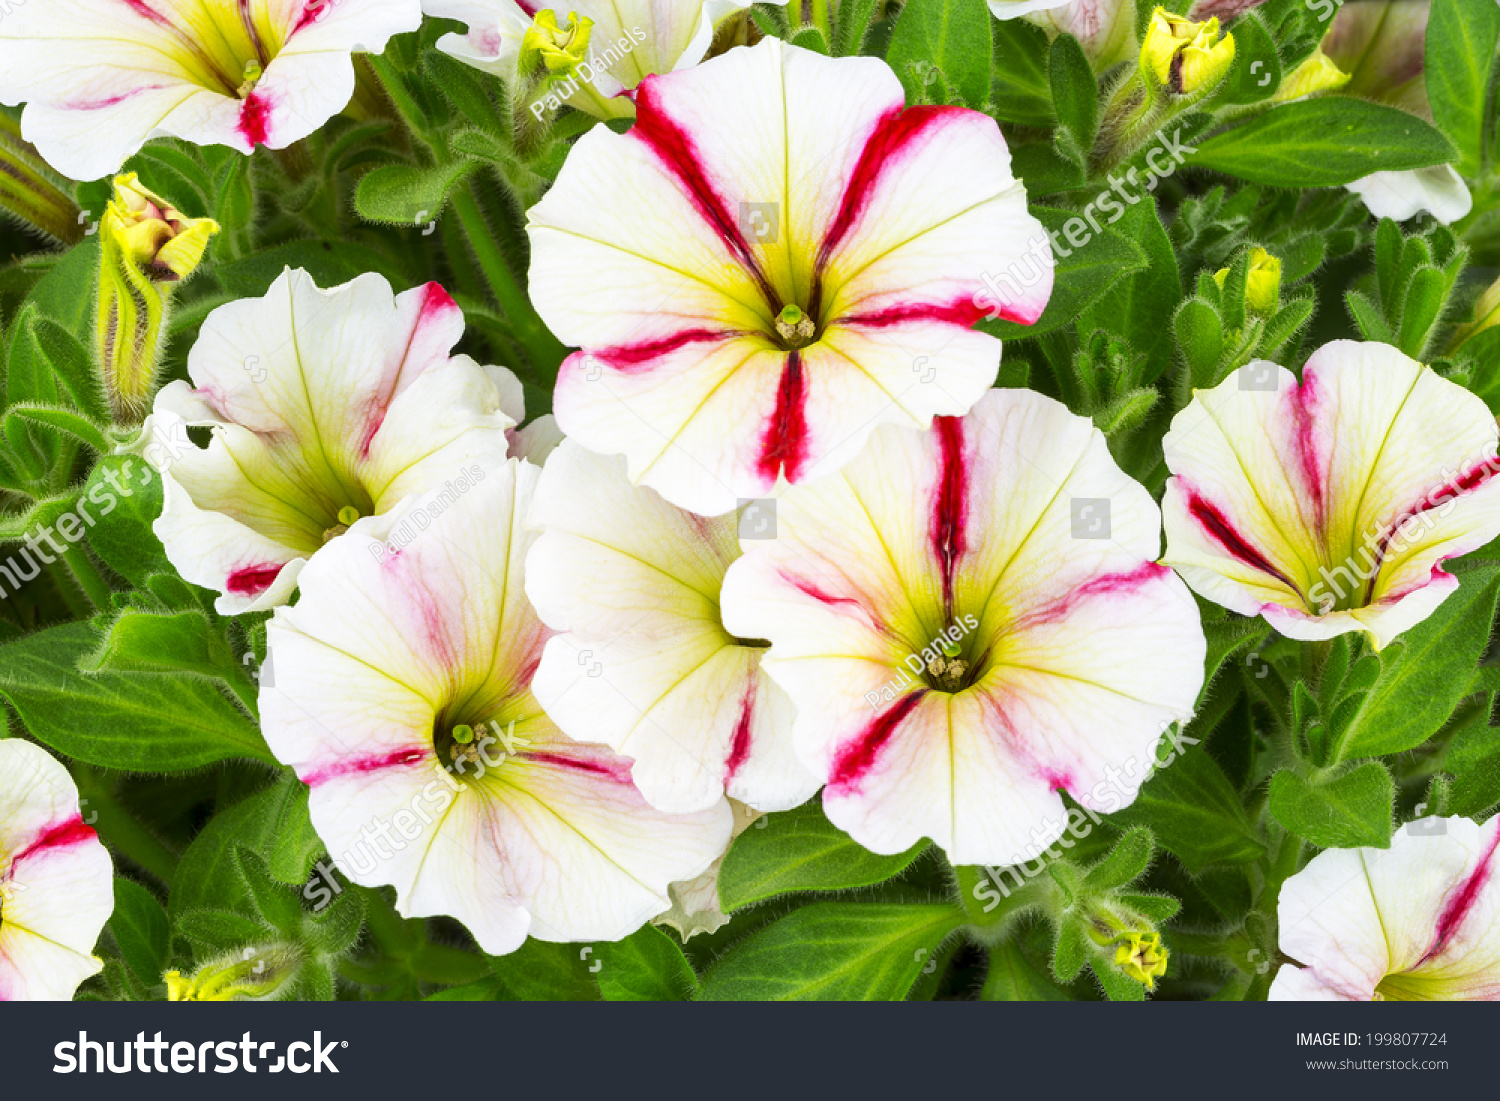 Red White Trailing Petunia Flowers Stock Photo Edit Now 199807724